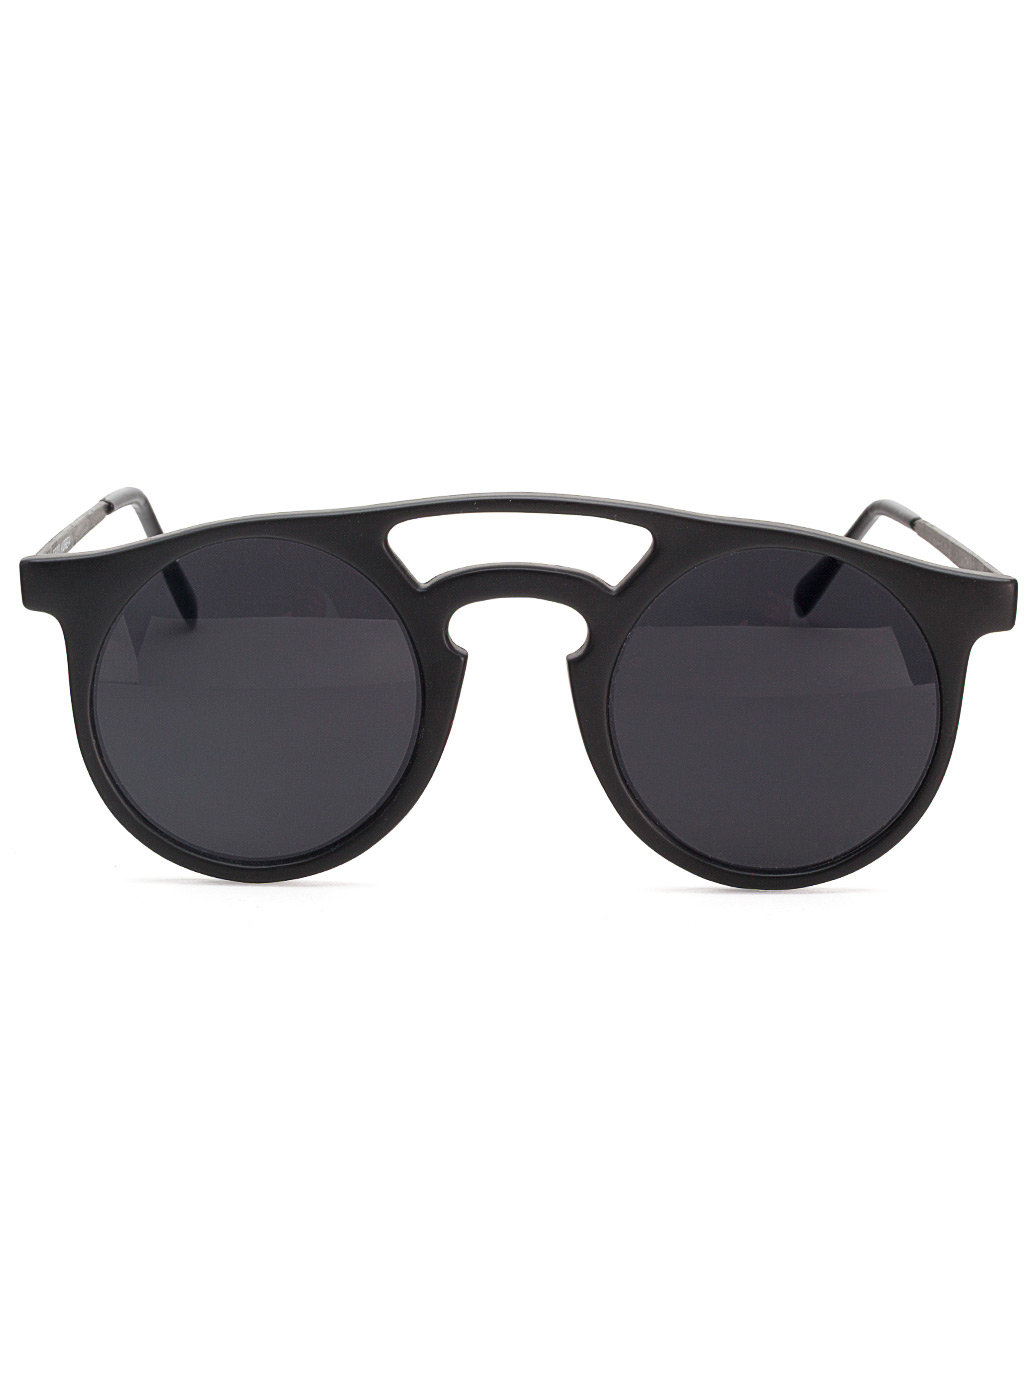 Pitched Sunglass | American Apparel